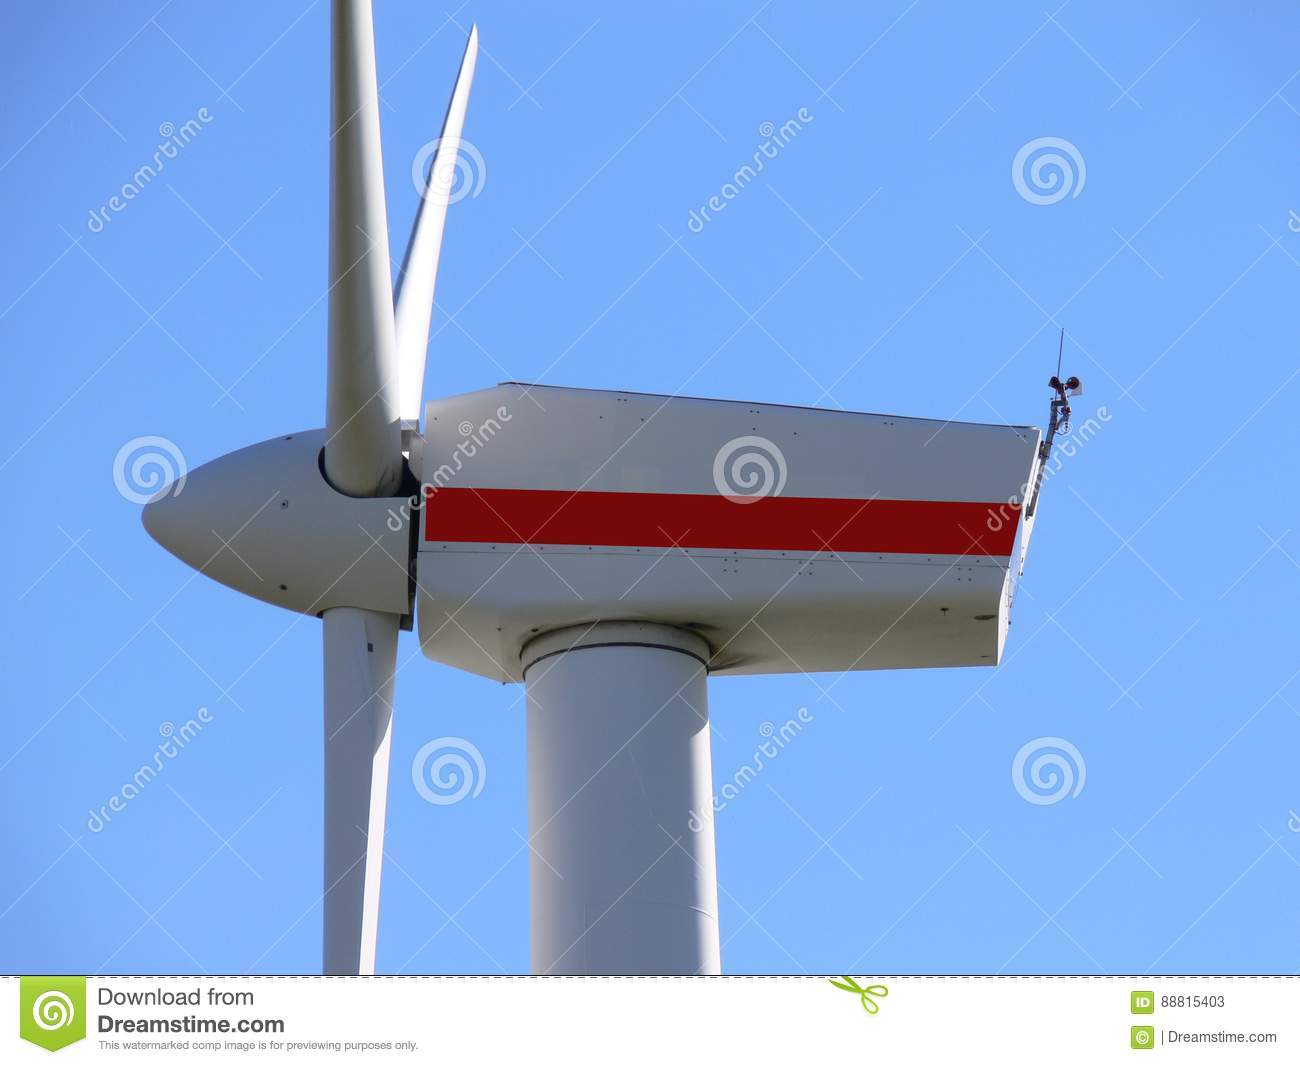 Windmill with a red stripe